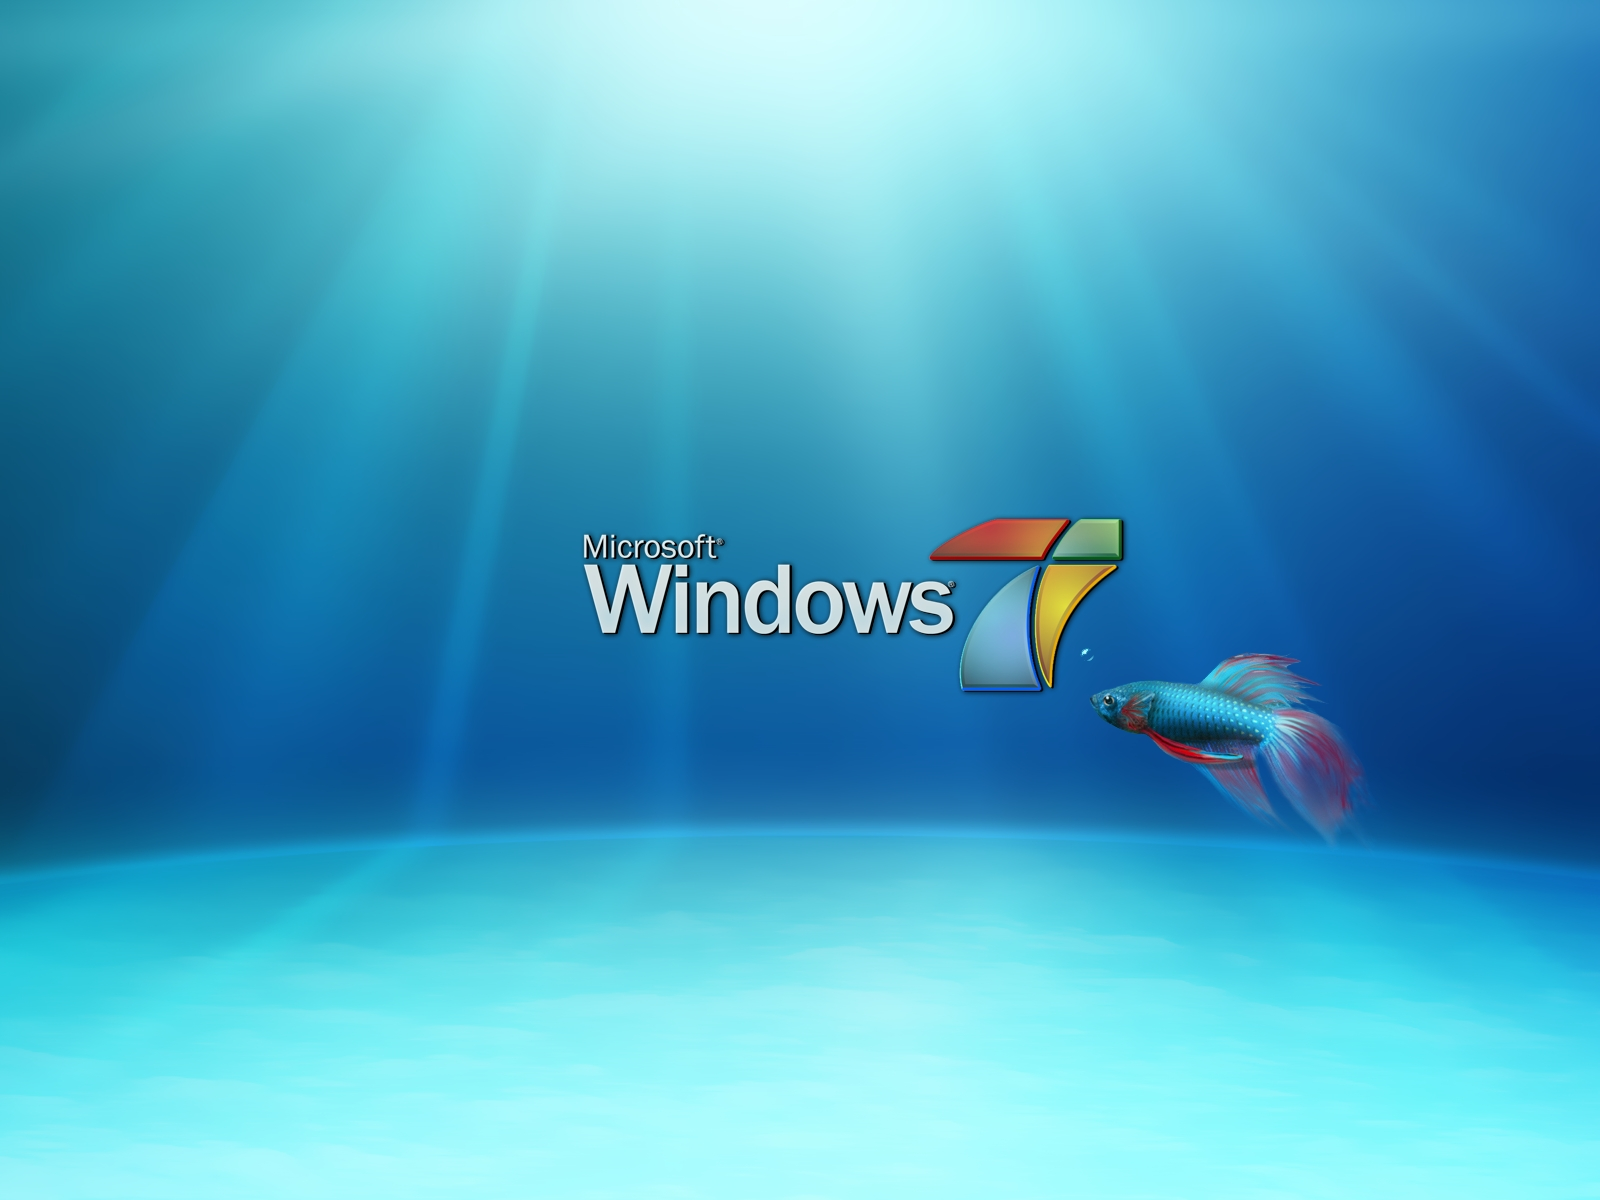 Windows 7 home wallpaper wallpapersafari for 90s wallpaper home